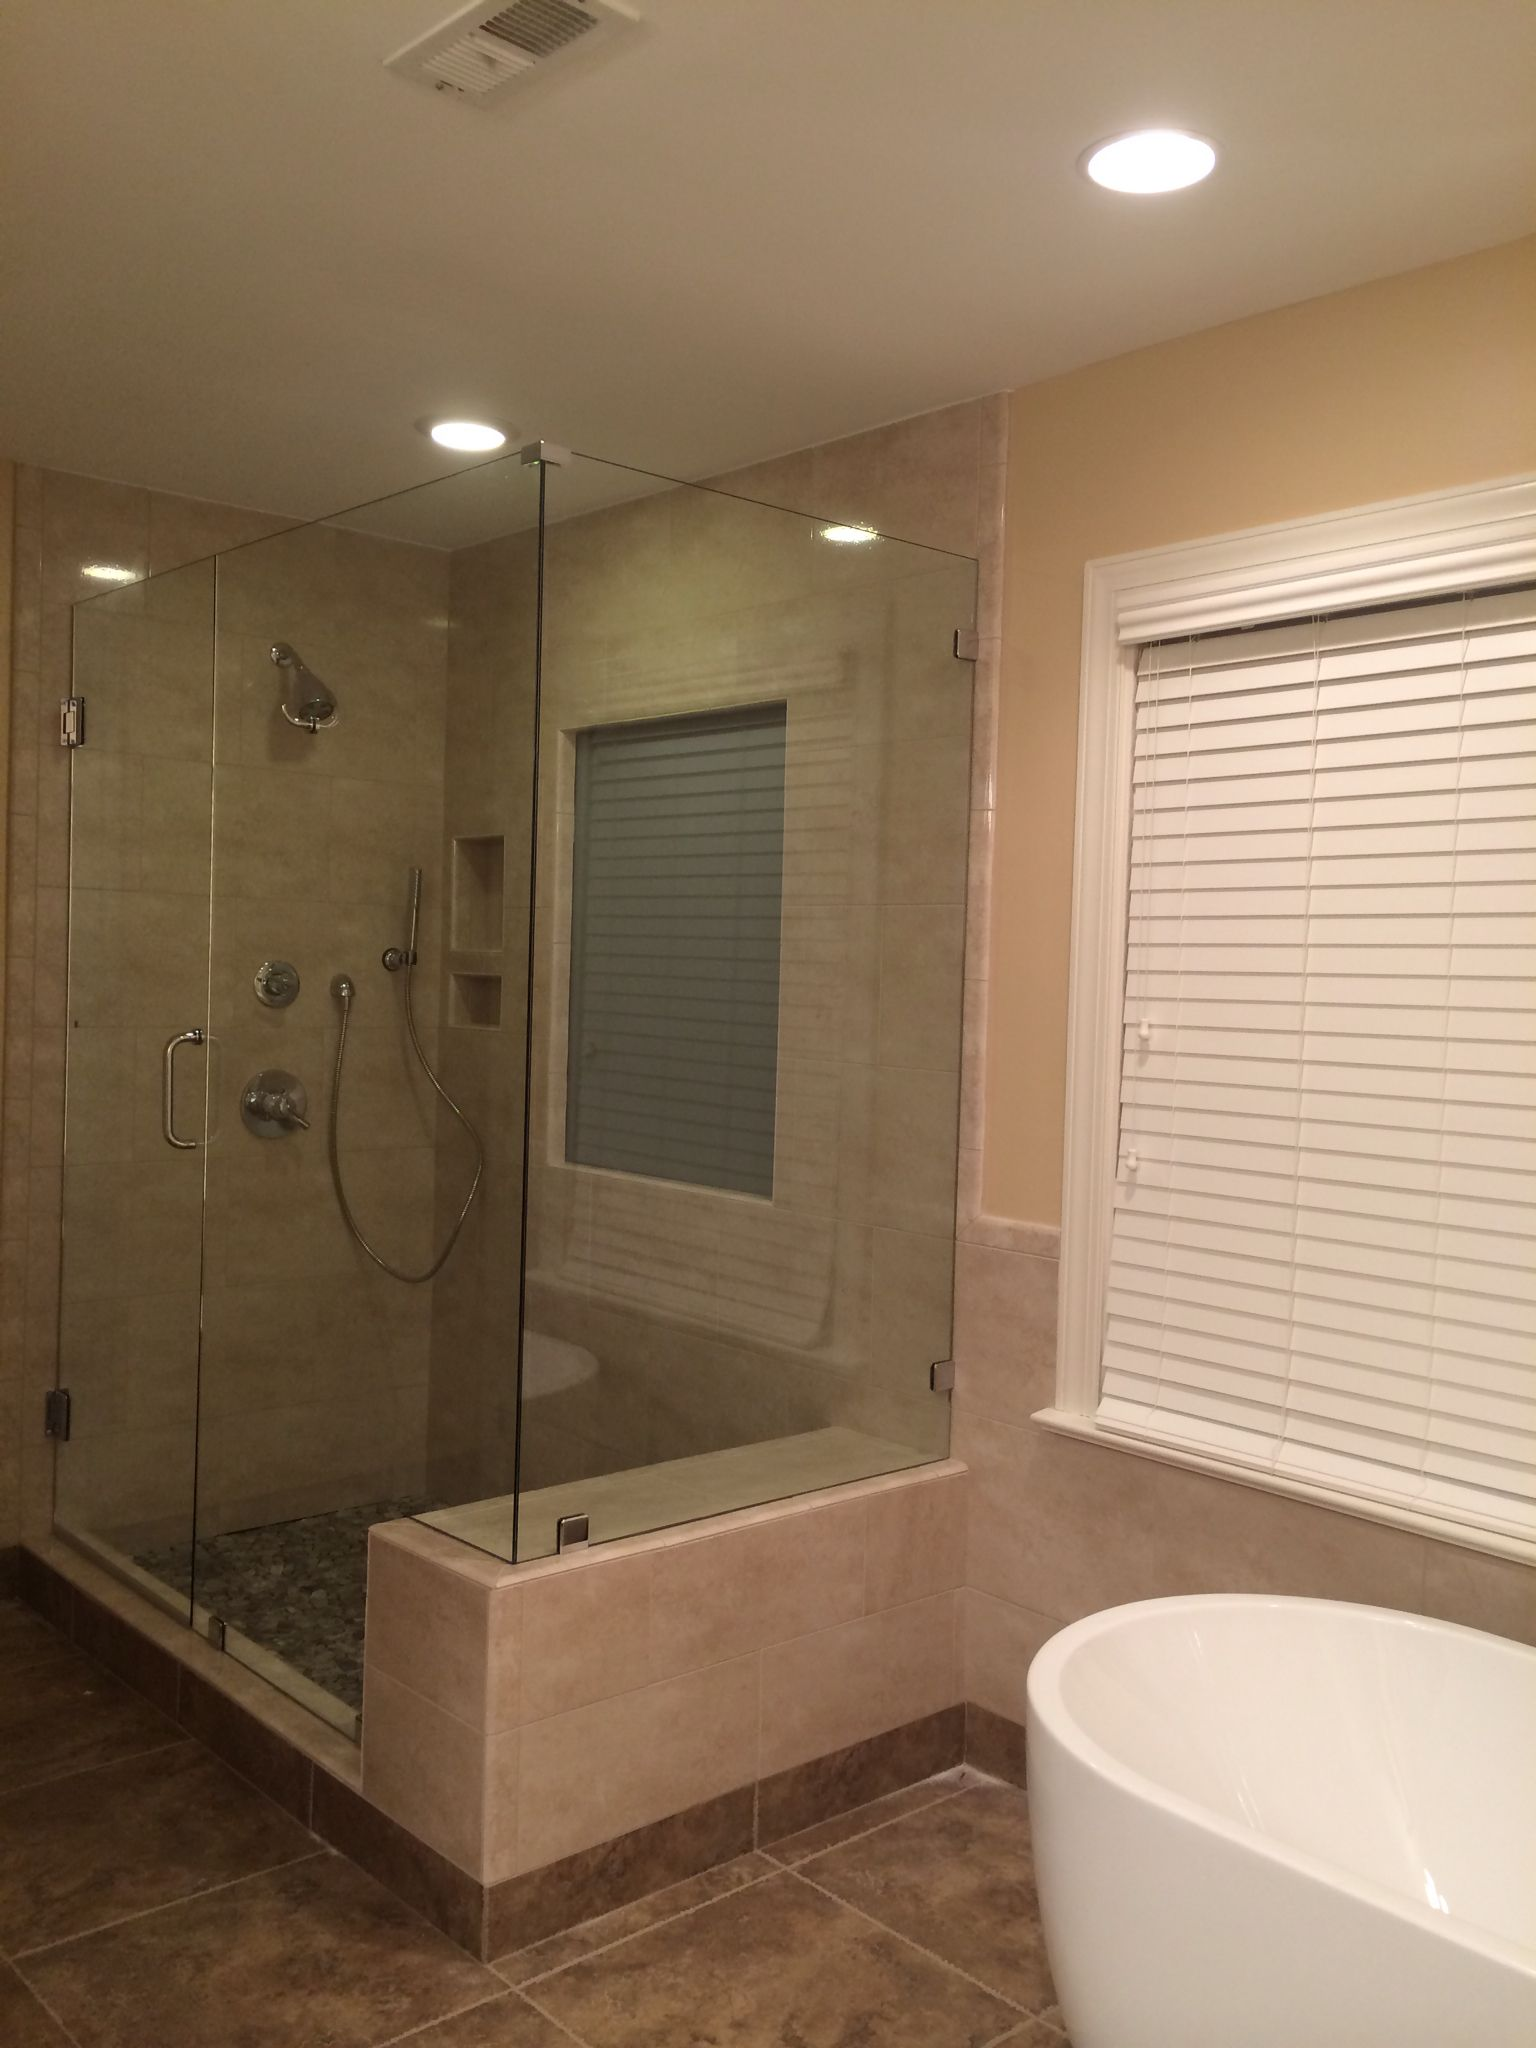 Corner Shower With Seat.Frameless 90 Degree Corner Shower With Built In Bench Seat